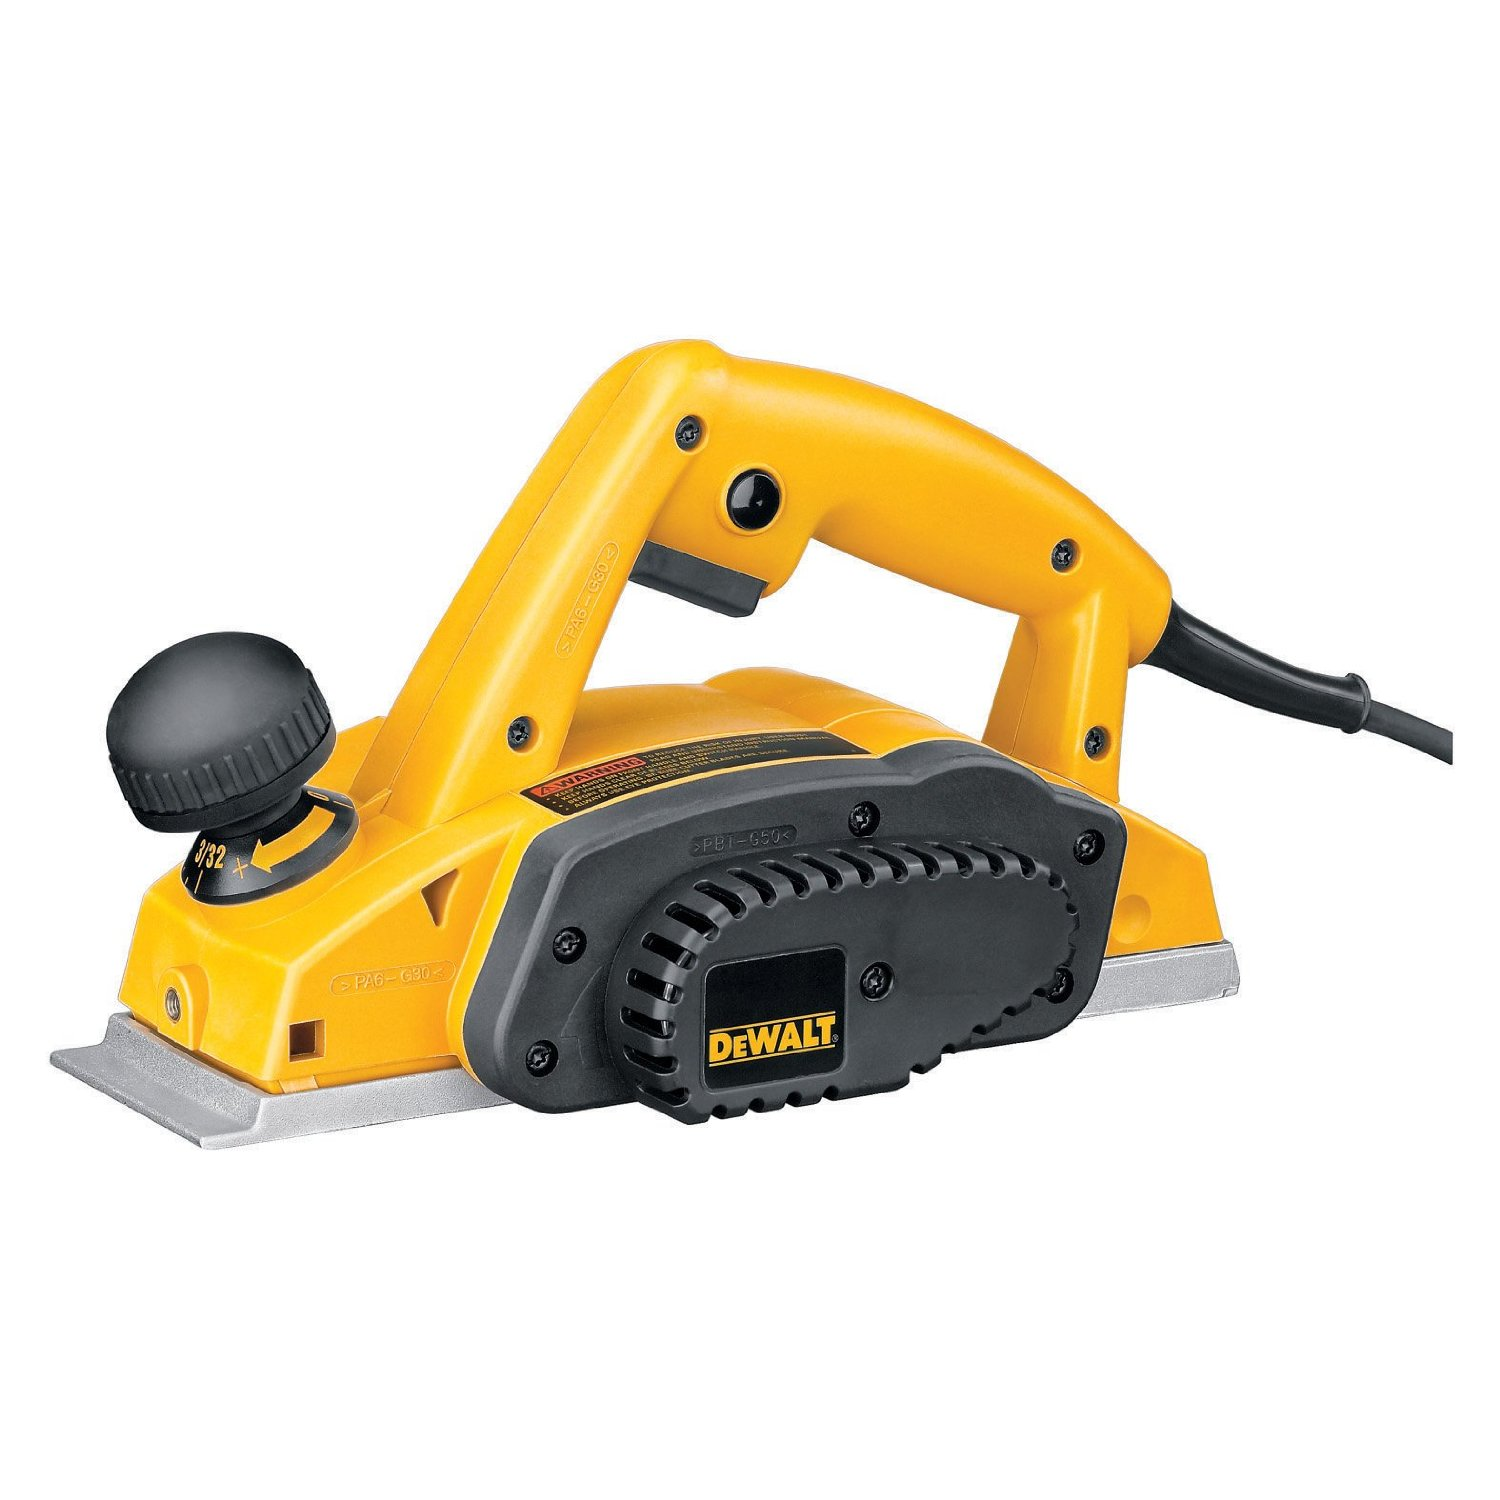 Jason rents Carries Electric Wood Planers for Rent.